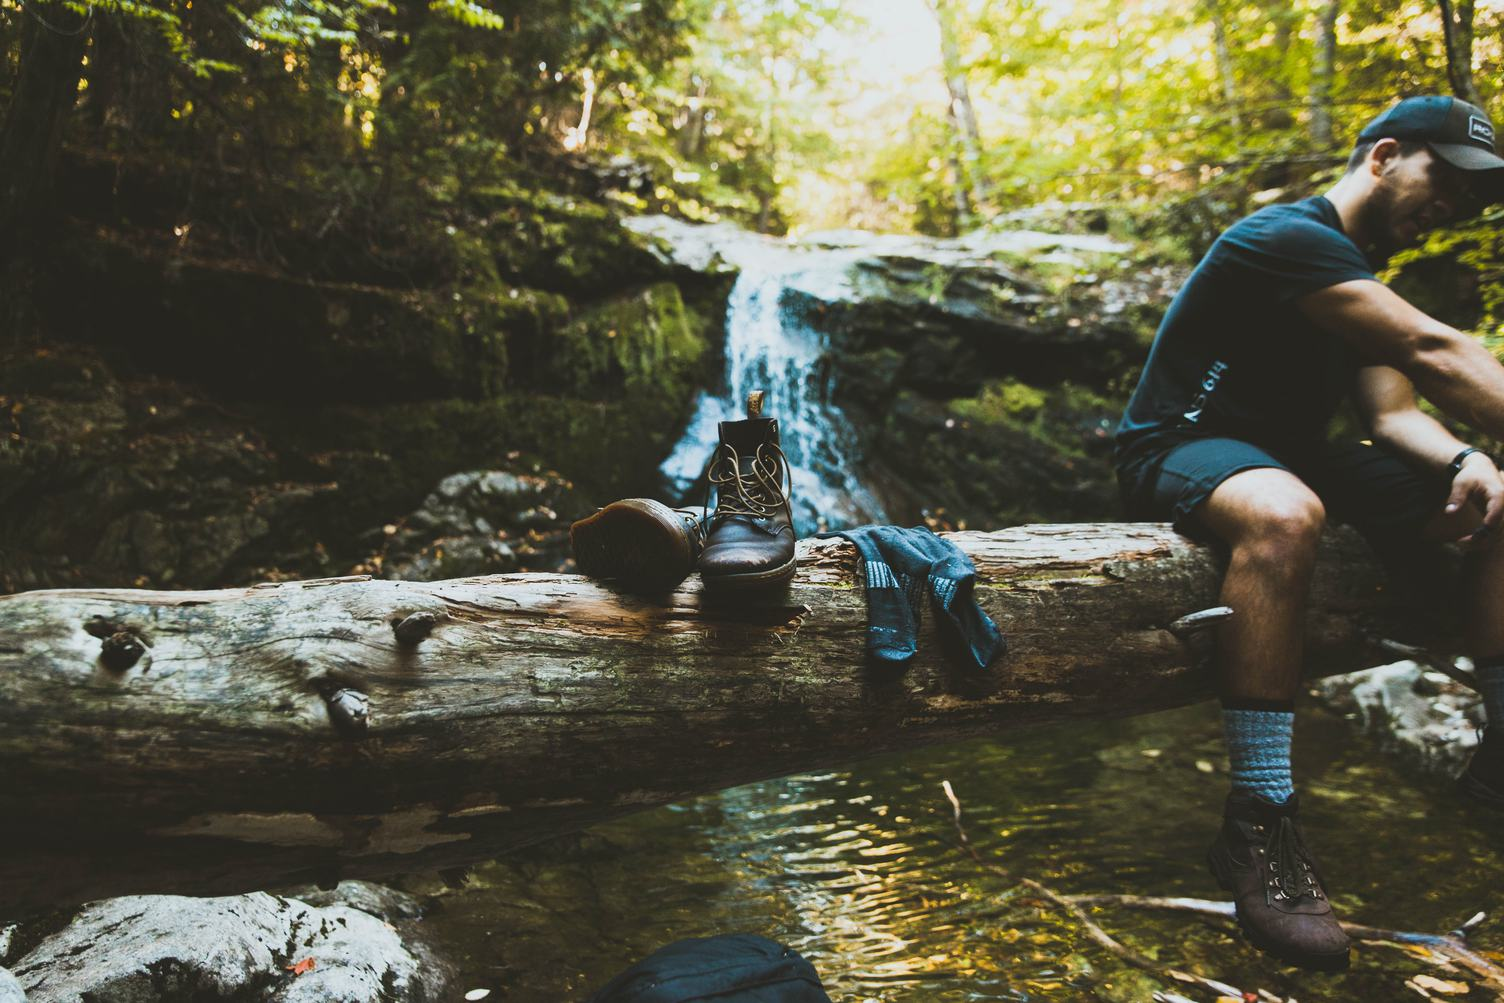 Hiker High Boots and Socks on a Fallen Log at the Mountain Stream